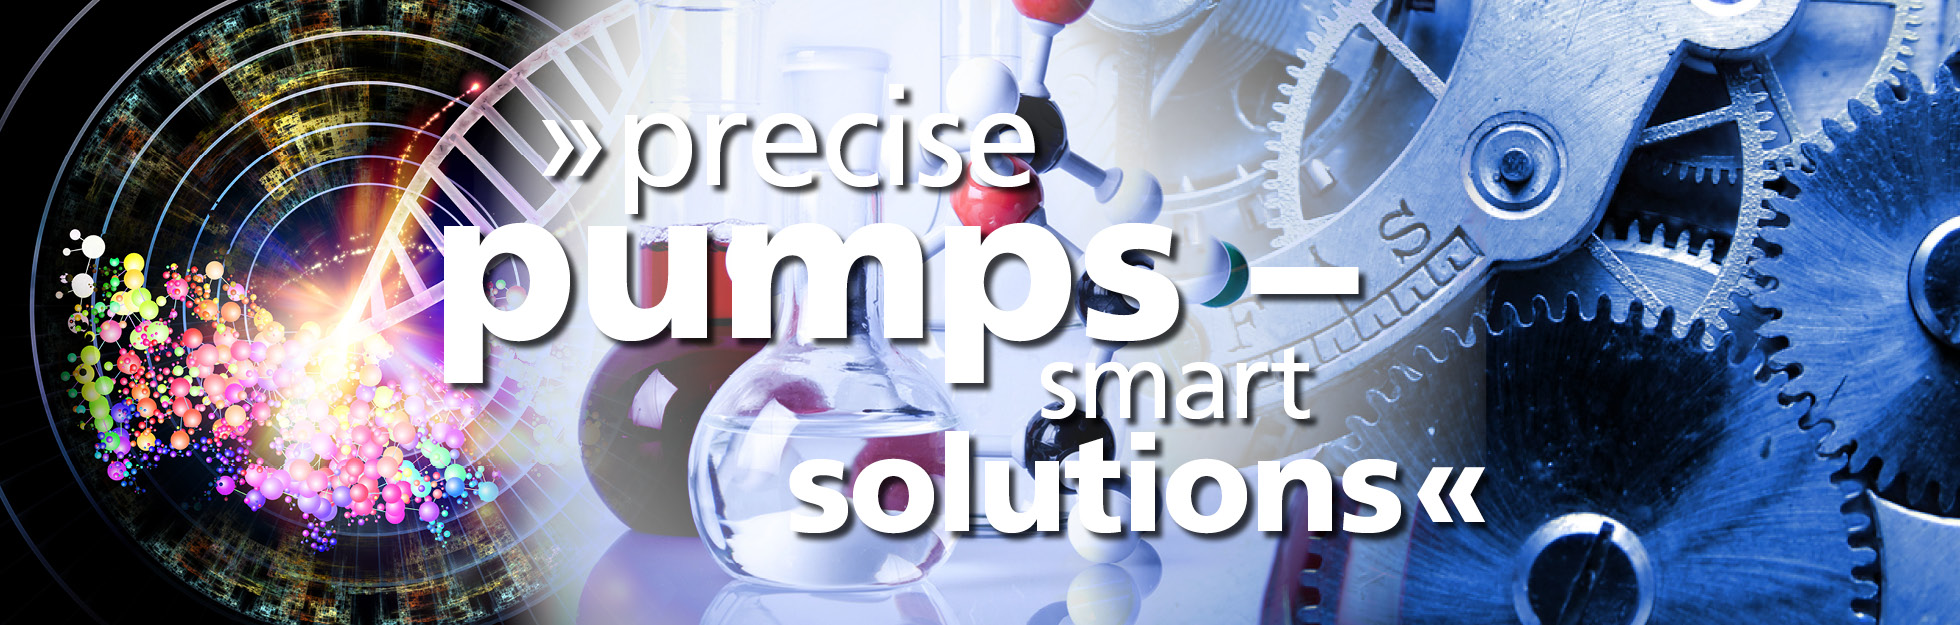 precise pumps - smart solutions HNP Mikrosysteme